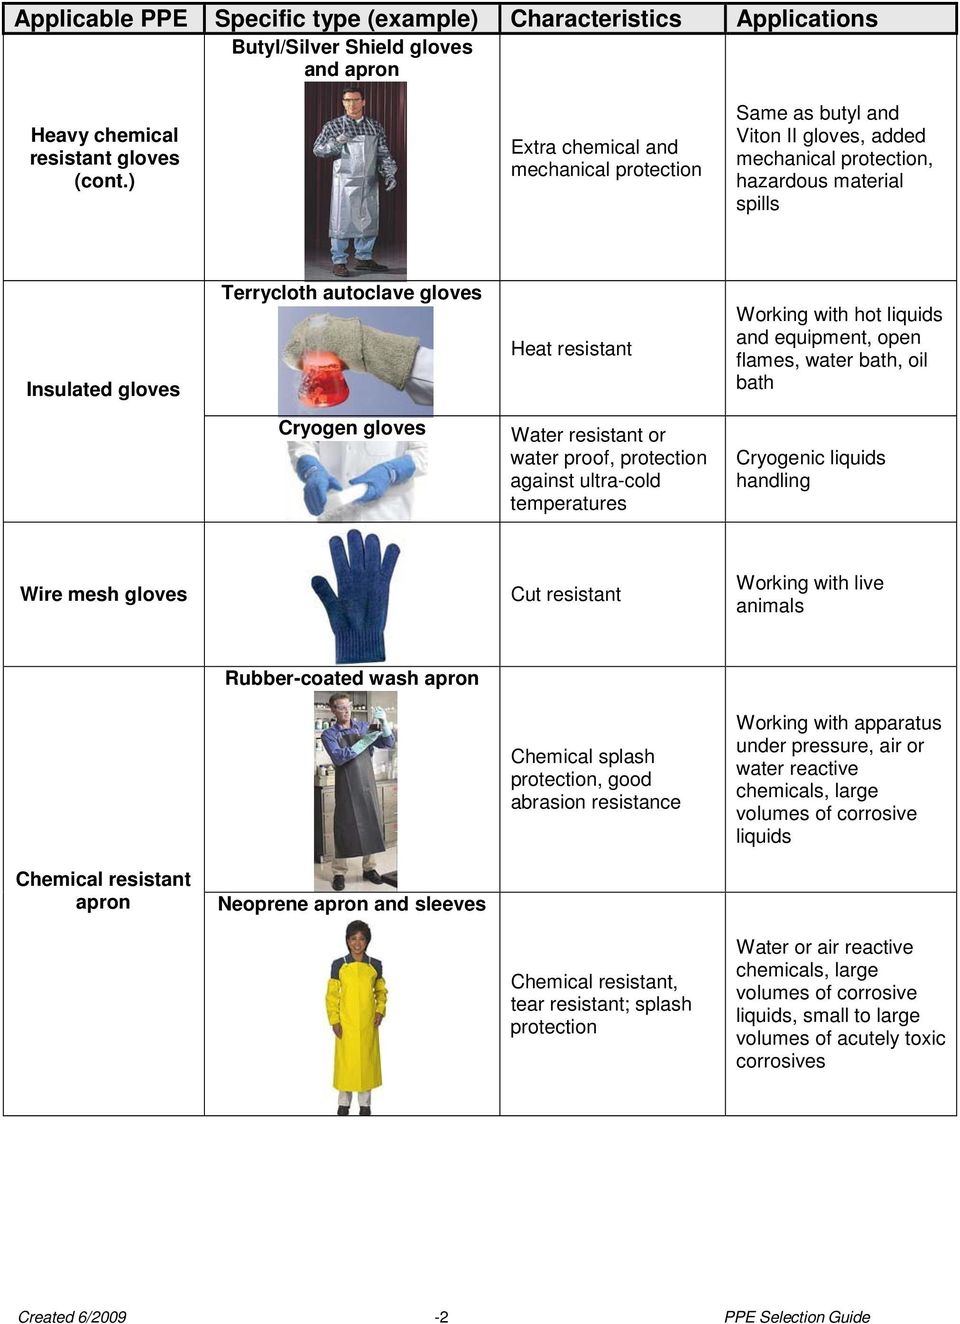 liquids and equipment, open flames, water bath, oil bath Cryogen gloves Water resistant or water proof, protection against ultra-cold temperatures Cryogenic liquids handling Wire mesh gloves Cut